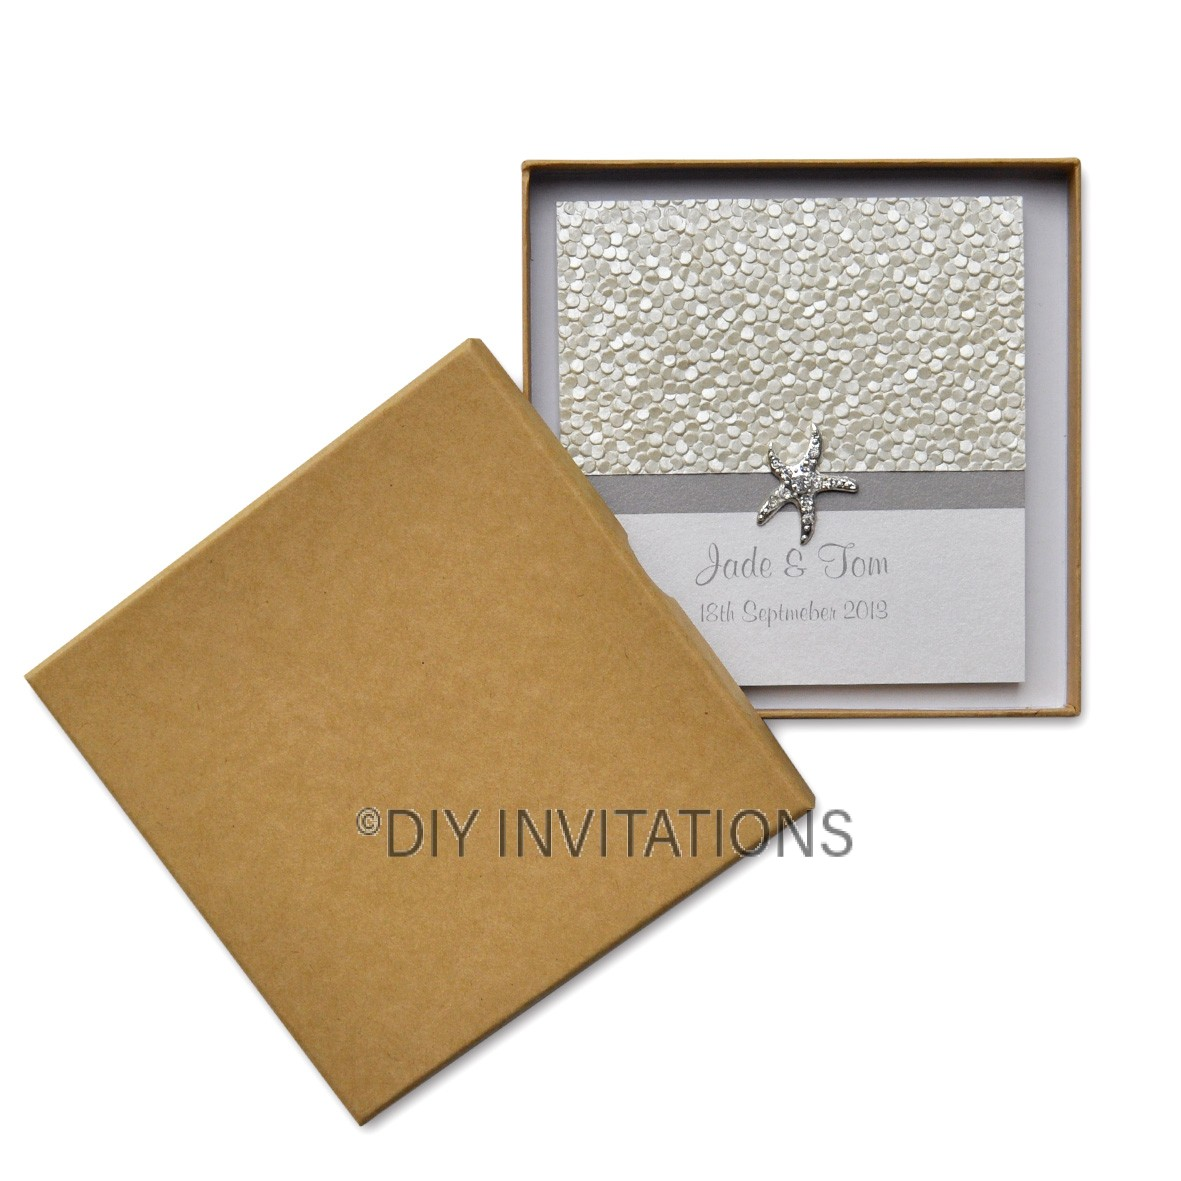 Rigid Invitation Box - Square - Plain Kraft (150x150mm)